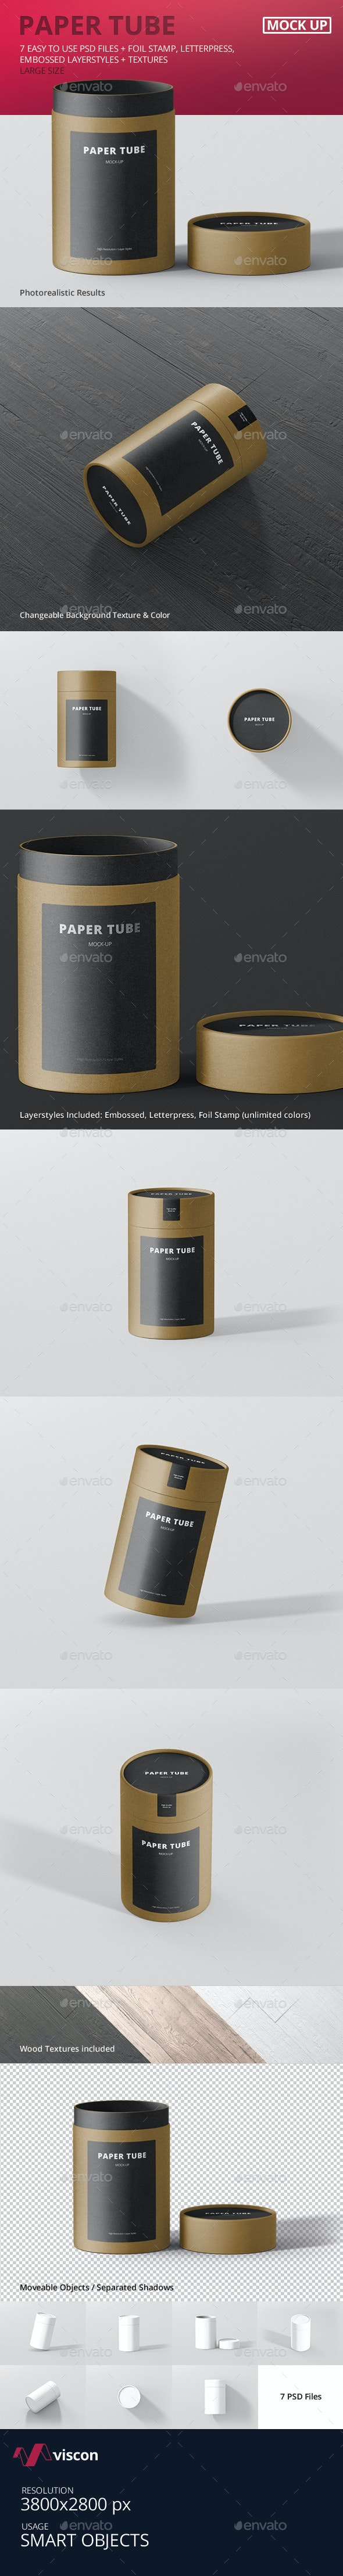 Paper Tube Packaging Mock-Up - Large - Miscellaneous Packaging